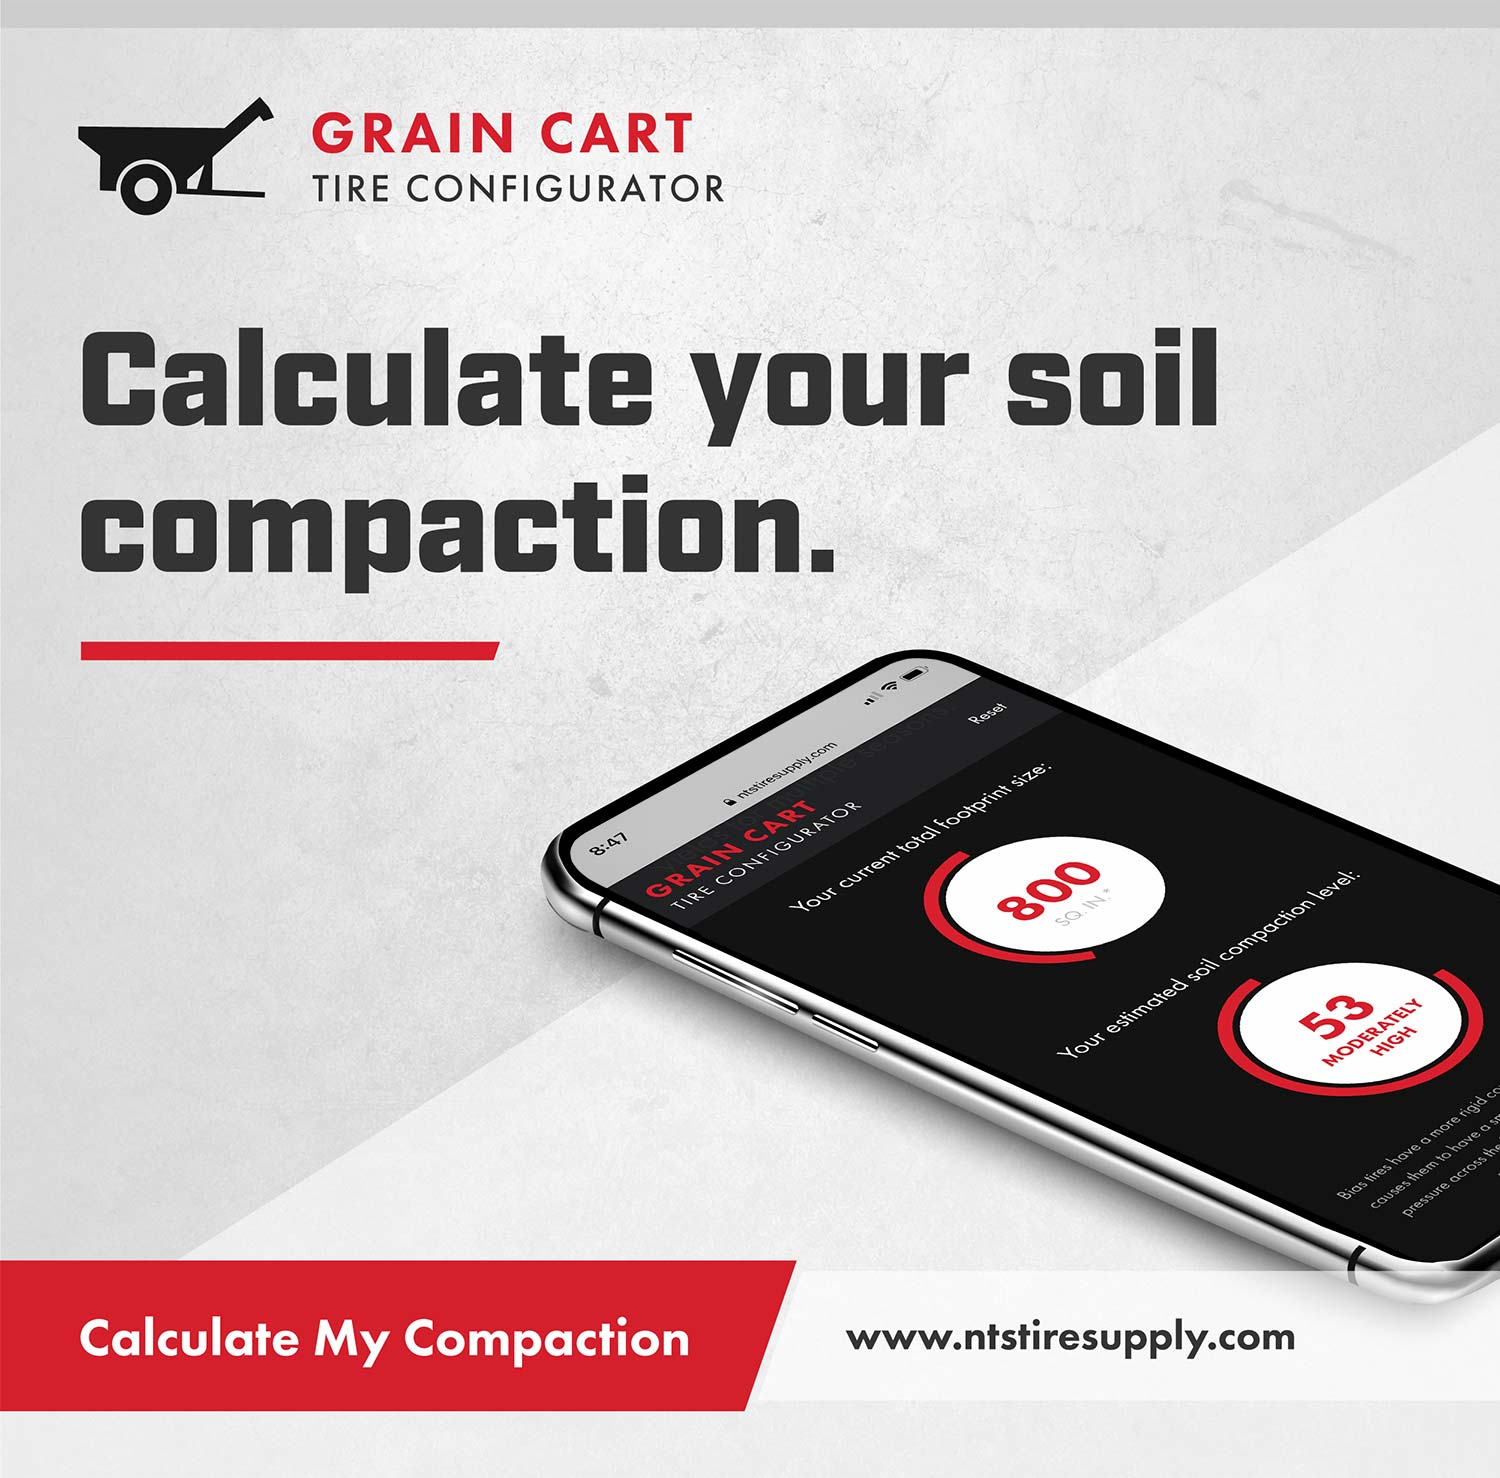 Calculate your soil compaction with NTS Tire Supply's Grain Cart Configurator